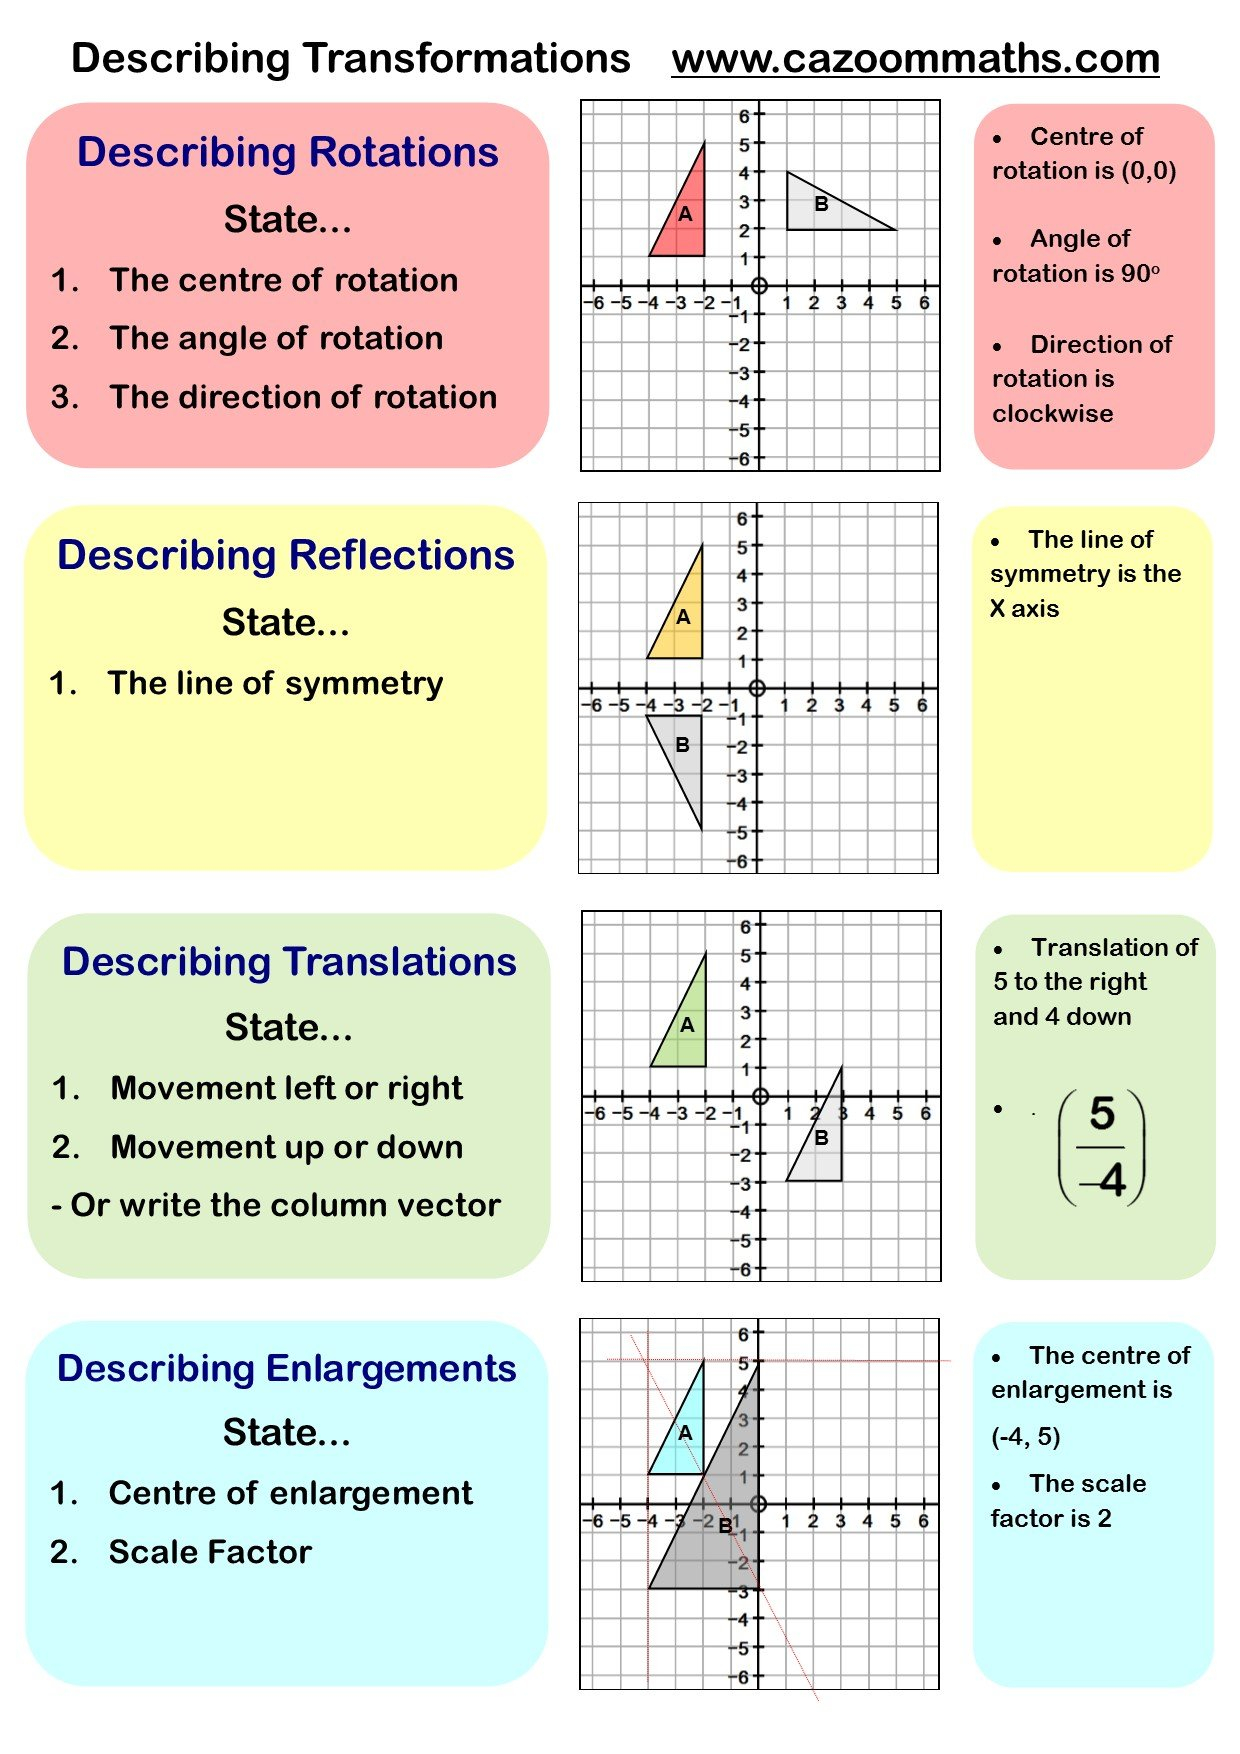 Transformations Worksheets With Answers  Cazoom Maths Worksheets And Translation Rotation Reflection Worksheet Answers